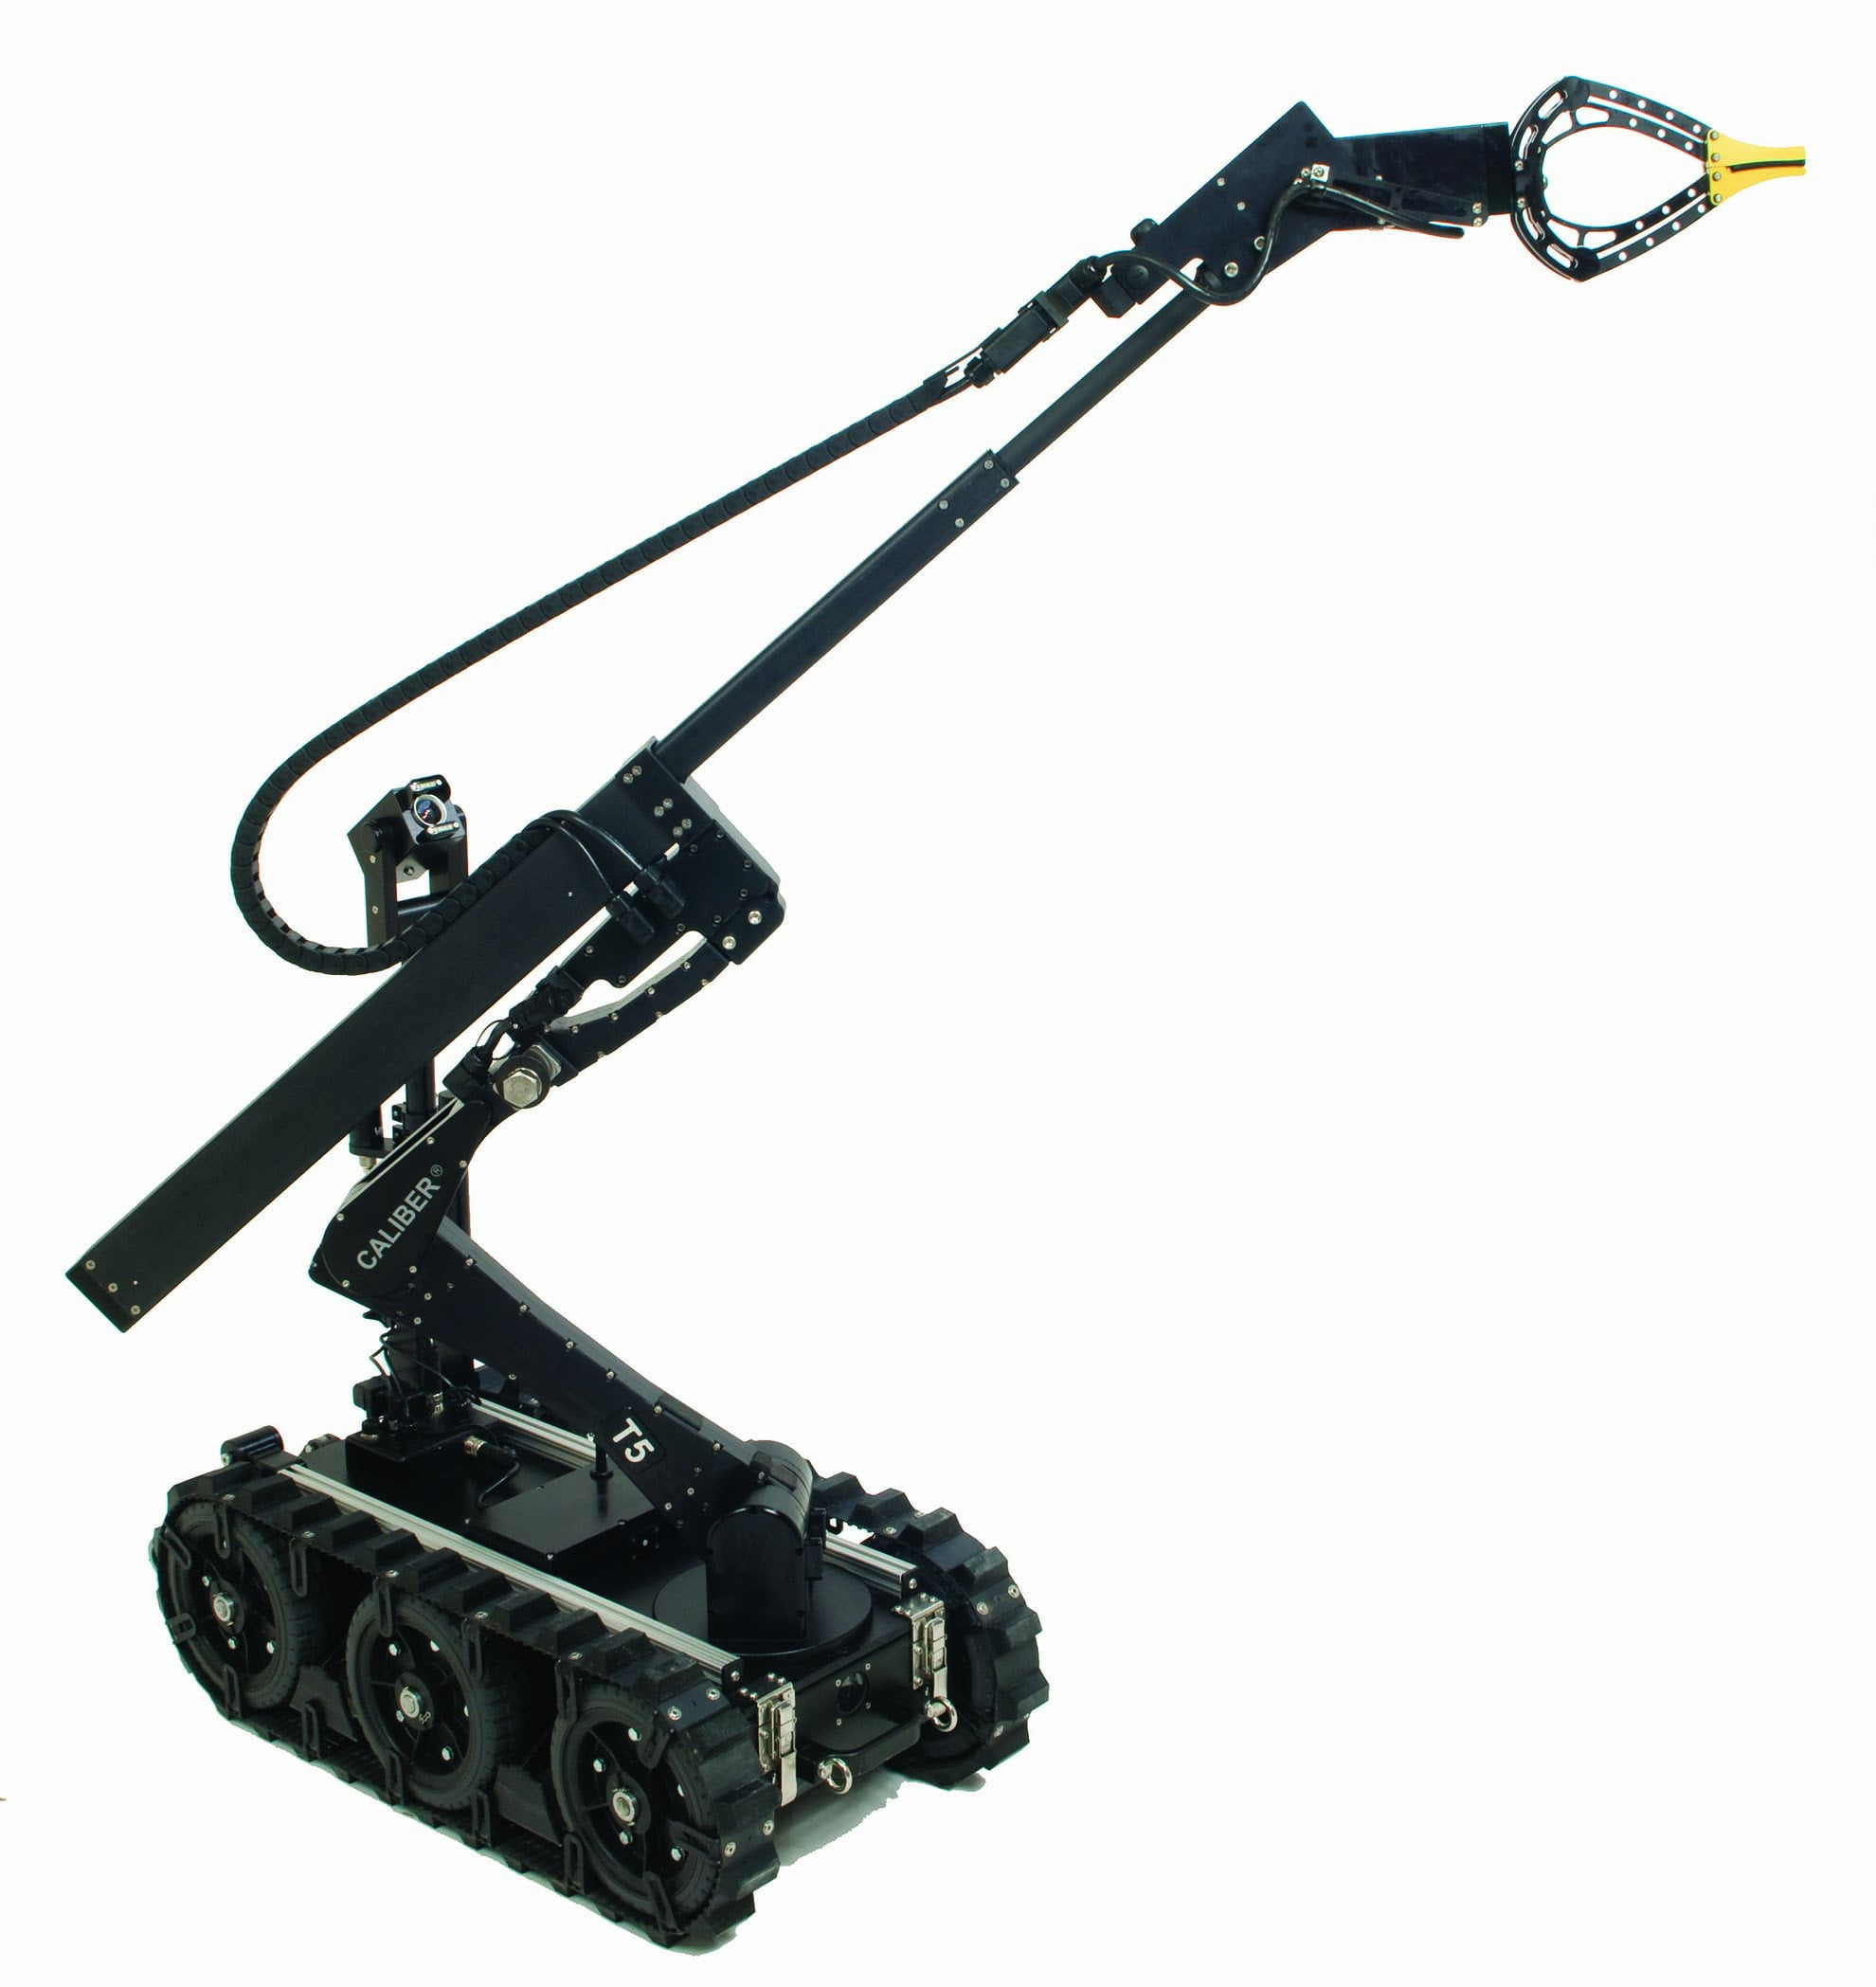 caliber-t5-swat-eod-robot-extension-arm-extented